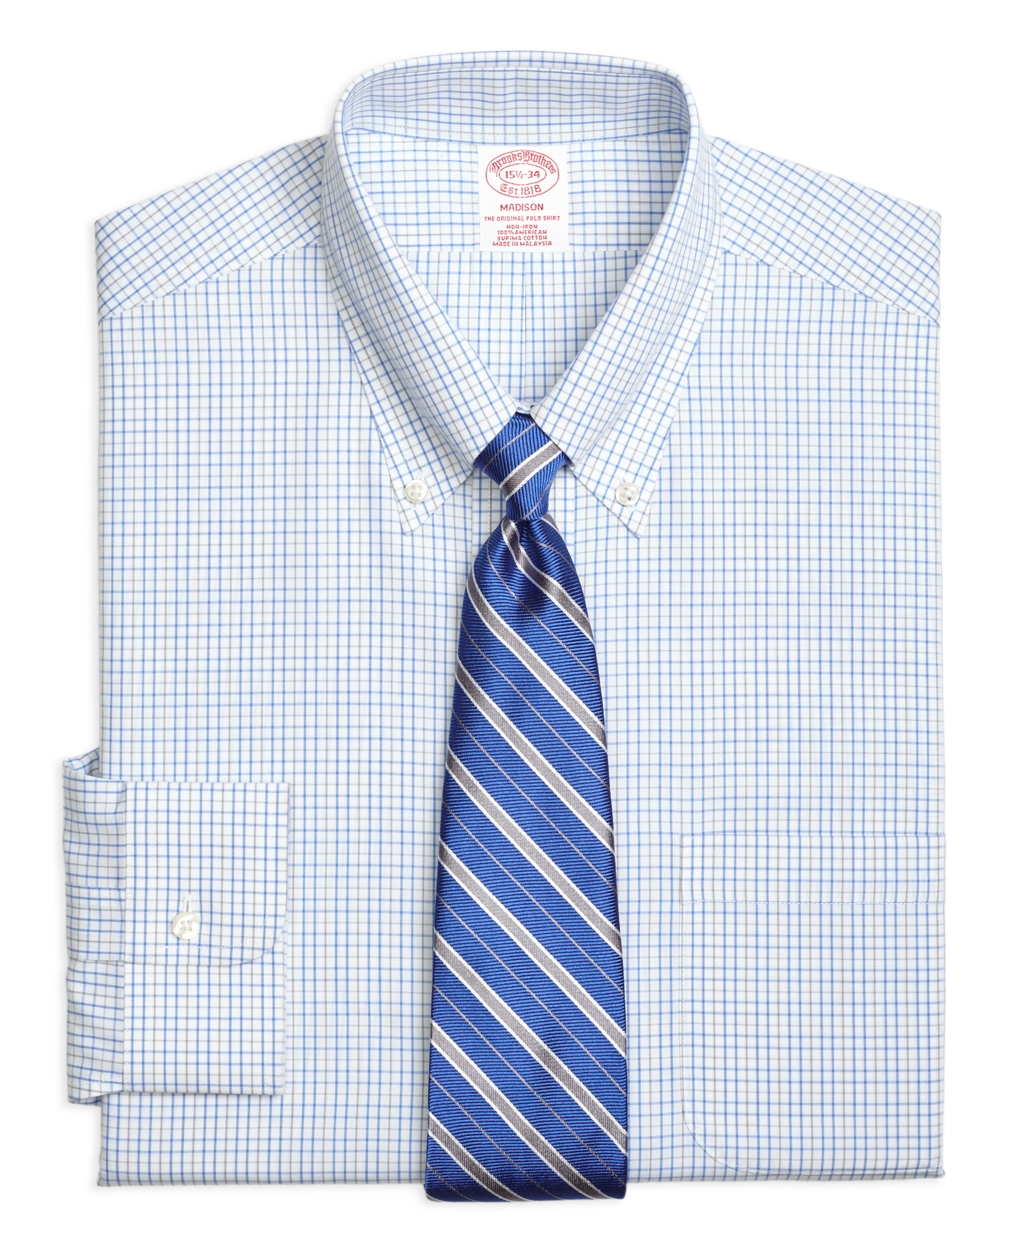 Brooks brothers non iron madison fit alternating for Brooks brothers non iron shirts review